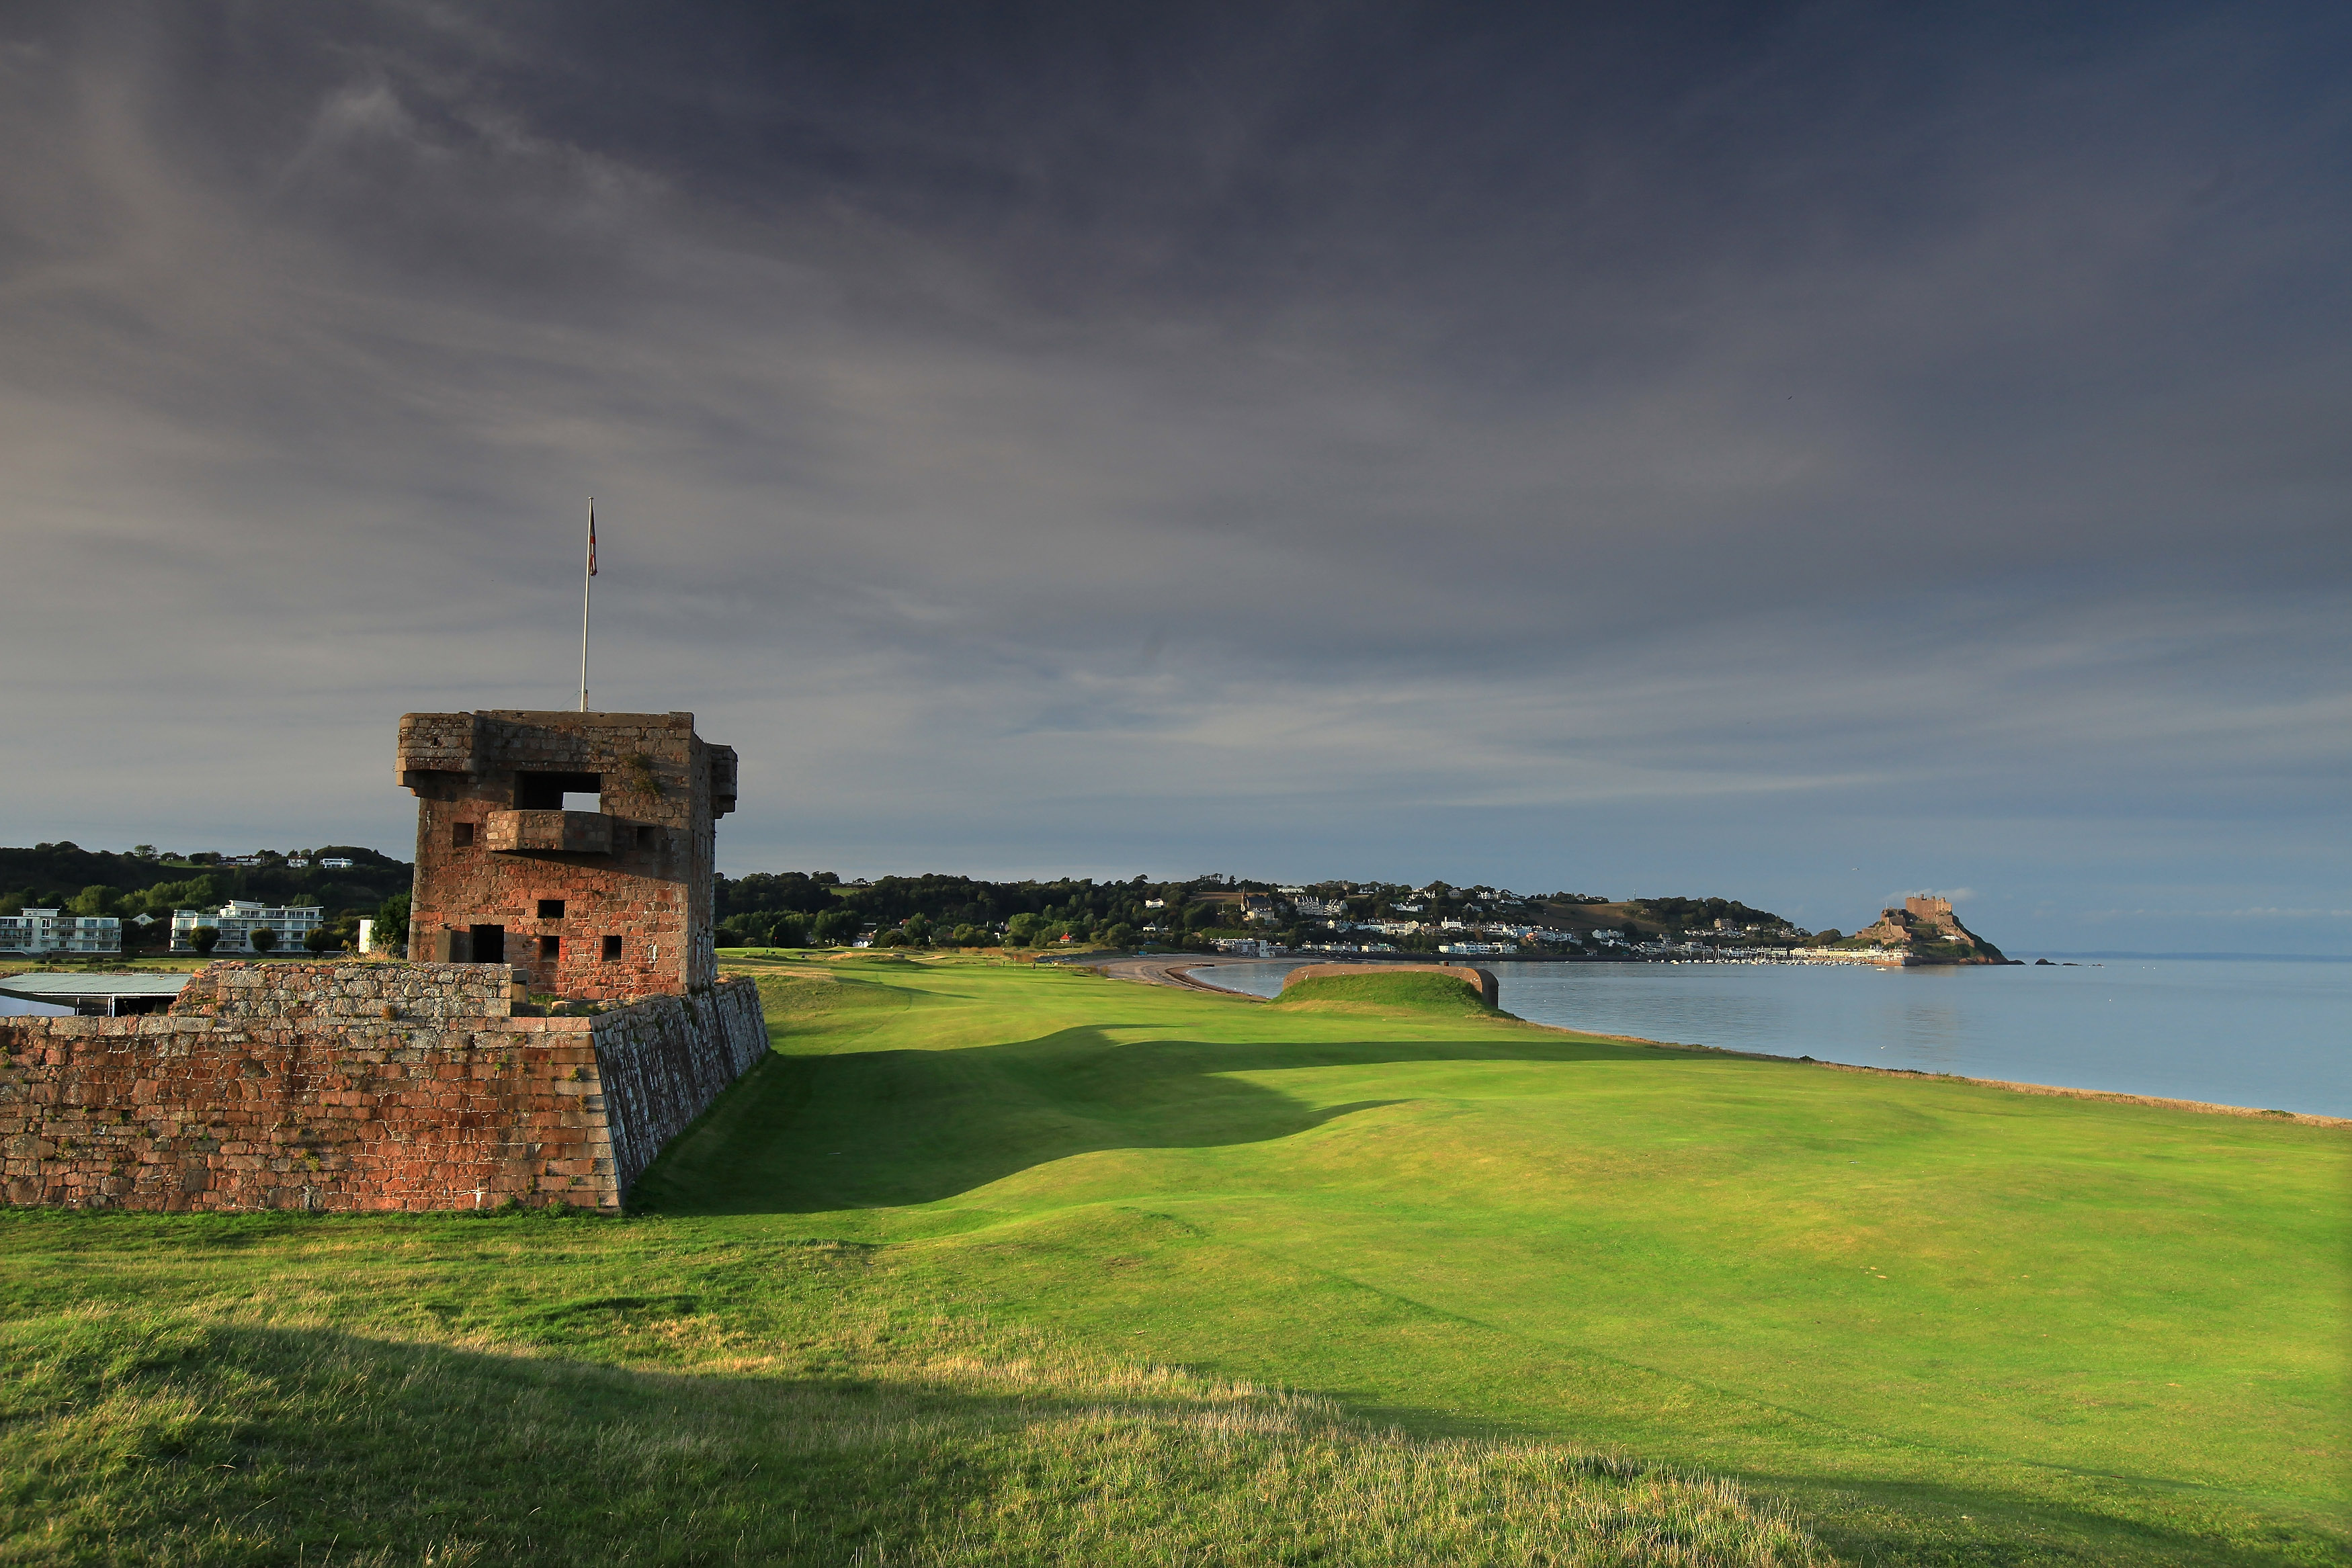 GROUVILLE, JERSEY - SEPTEMBER 19:  The 470 yards par 5, 1st hole that runs between the bay and the sea defences from World War II and Fort Henry on the left at The Royal Jersey Golf Club on September 19, 2010 in Grouville, Jersey, Channel Islands.  (Photo